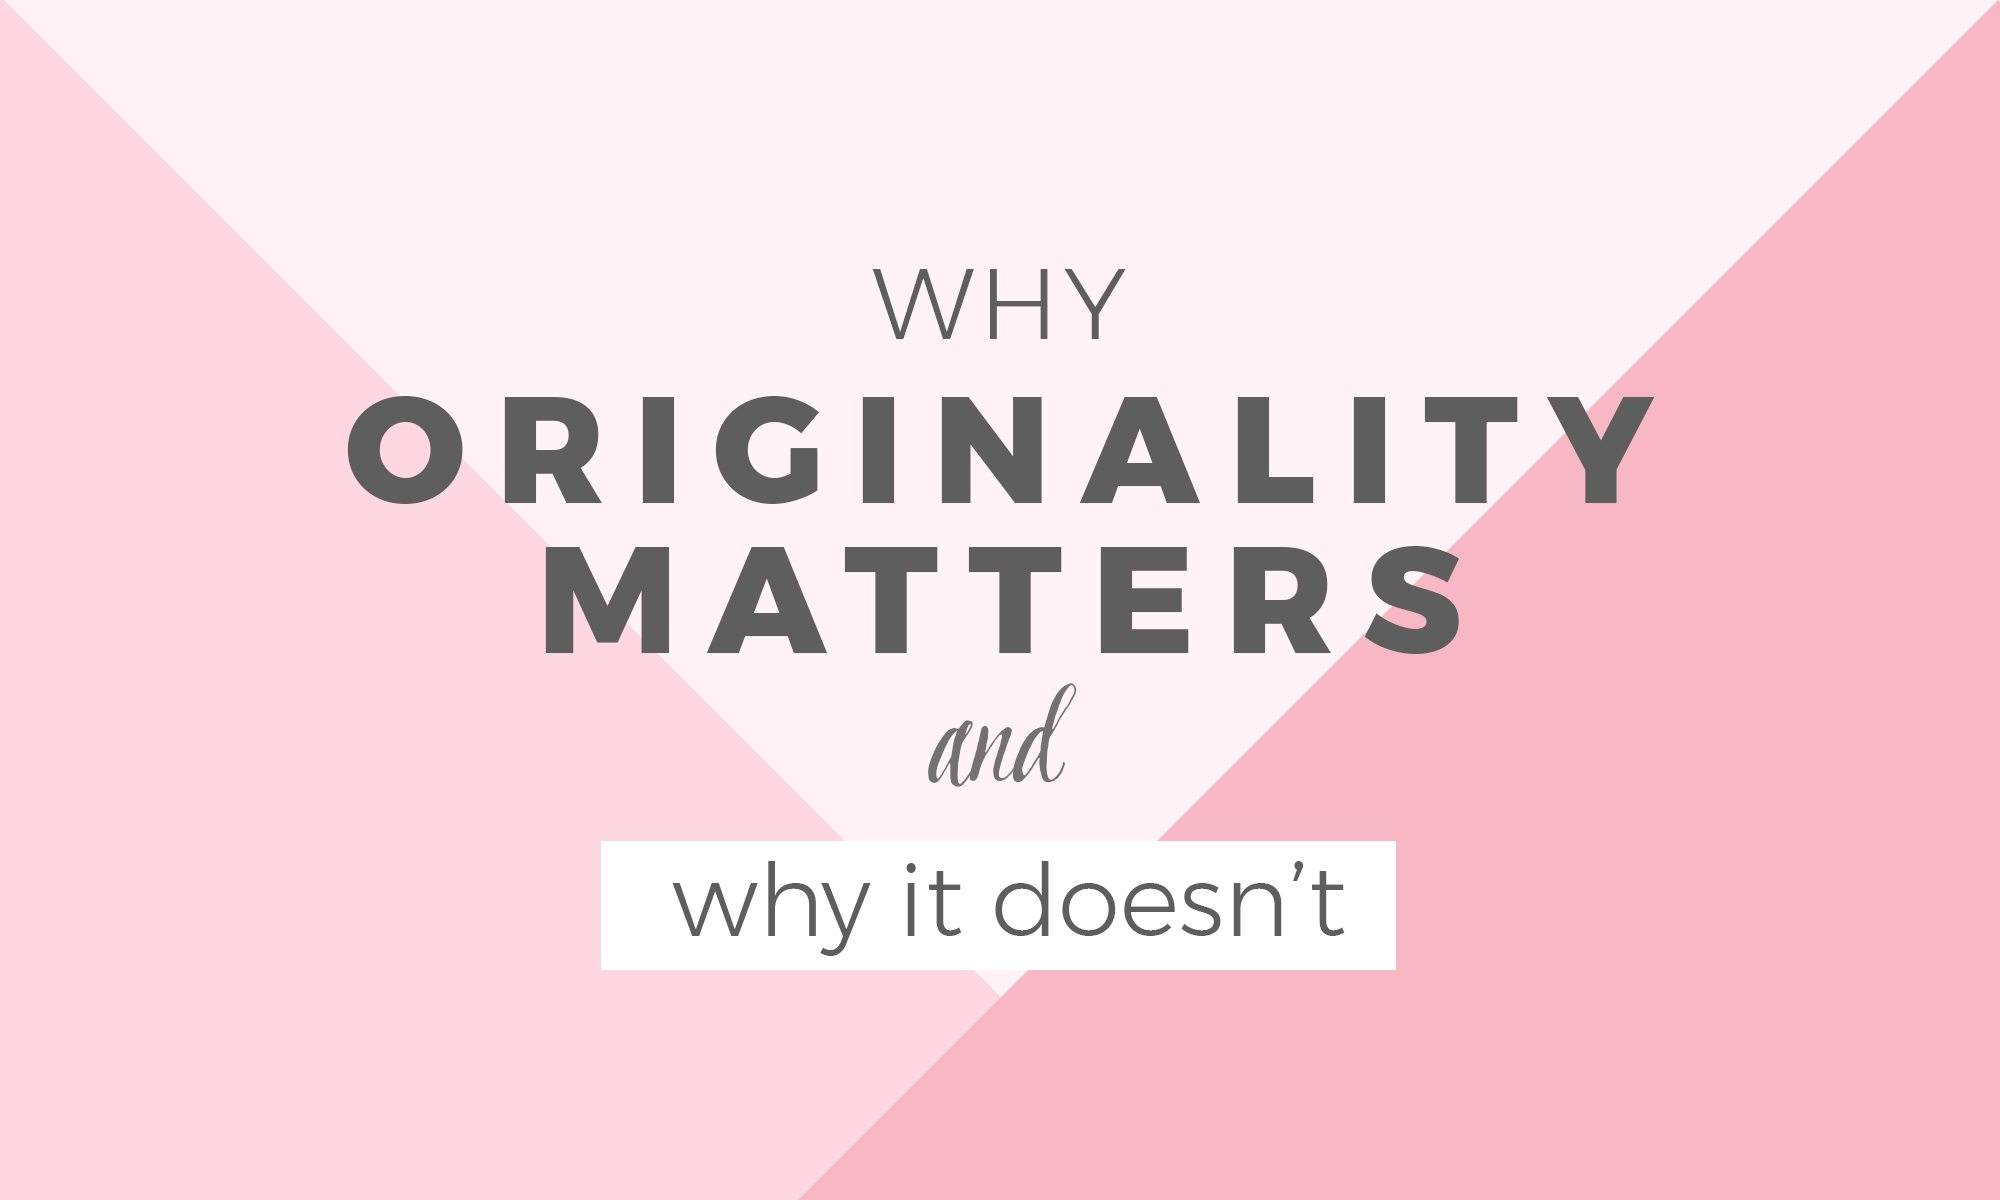 Why originality matters but also doesn't